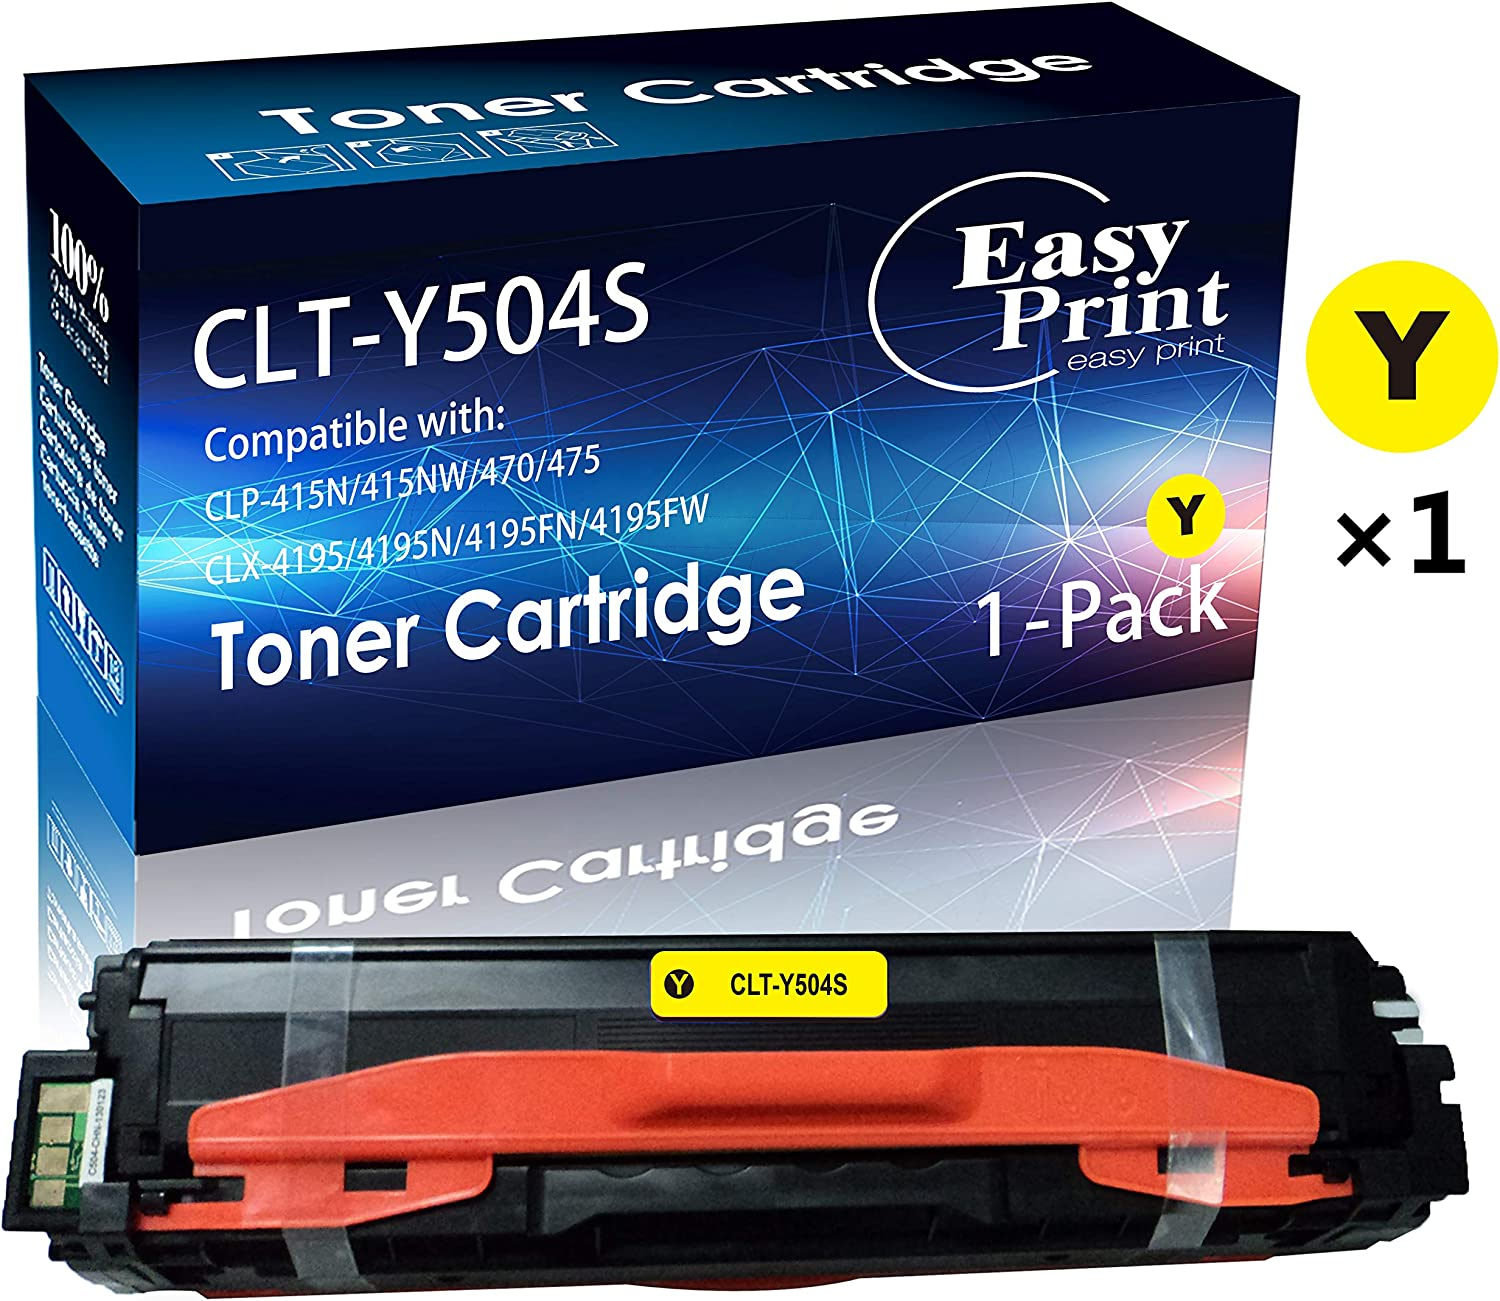 2-Pack Yellow Compatible High Yield CLT-Y504S CLT504S Y504S Laser Printer Toner Cartridge use for Samsung SL-C1810W SL-C1860FW CLX-4195 CLP-415NW CLP-470 Printer Up to 1,800 Pages per Cartridge